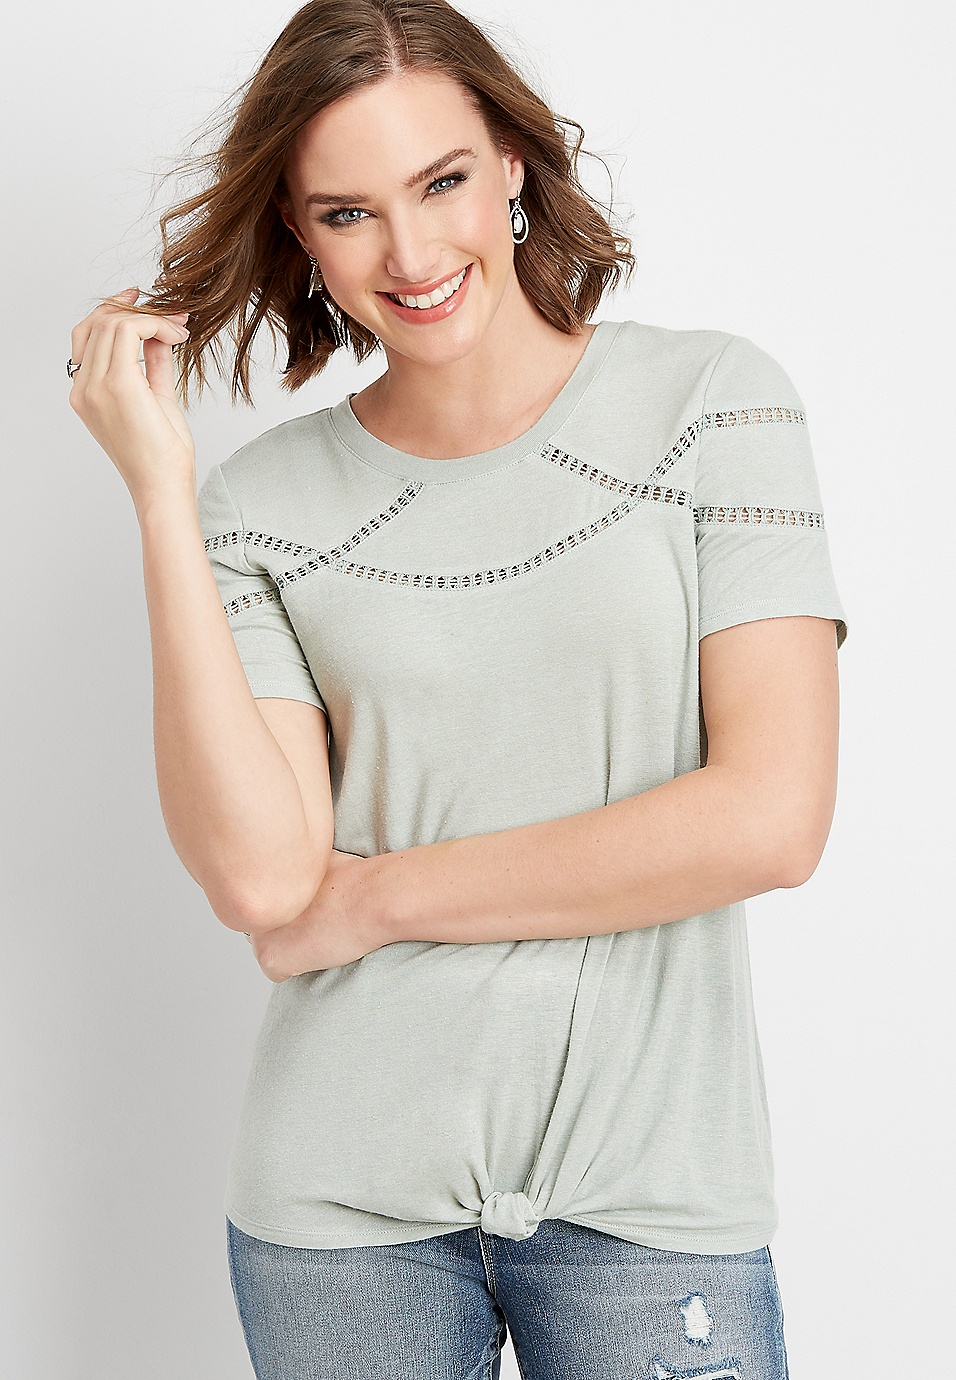 075d8e7428a lace inset scoop neck tee